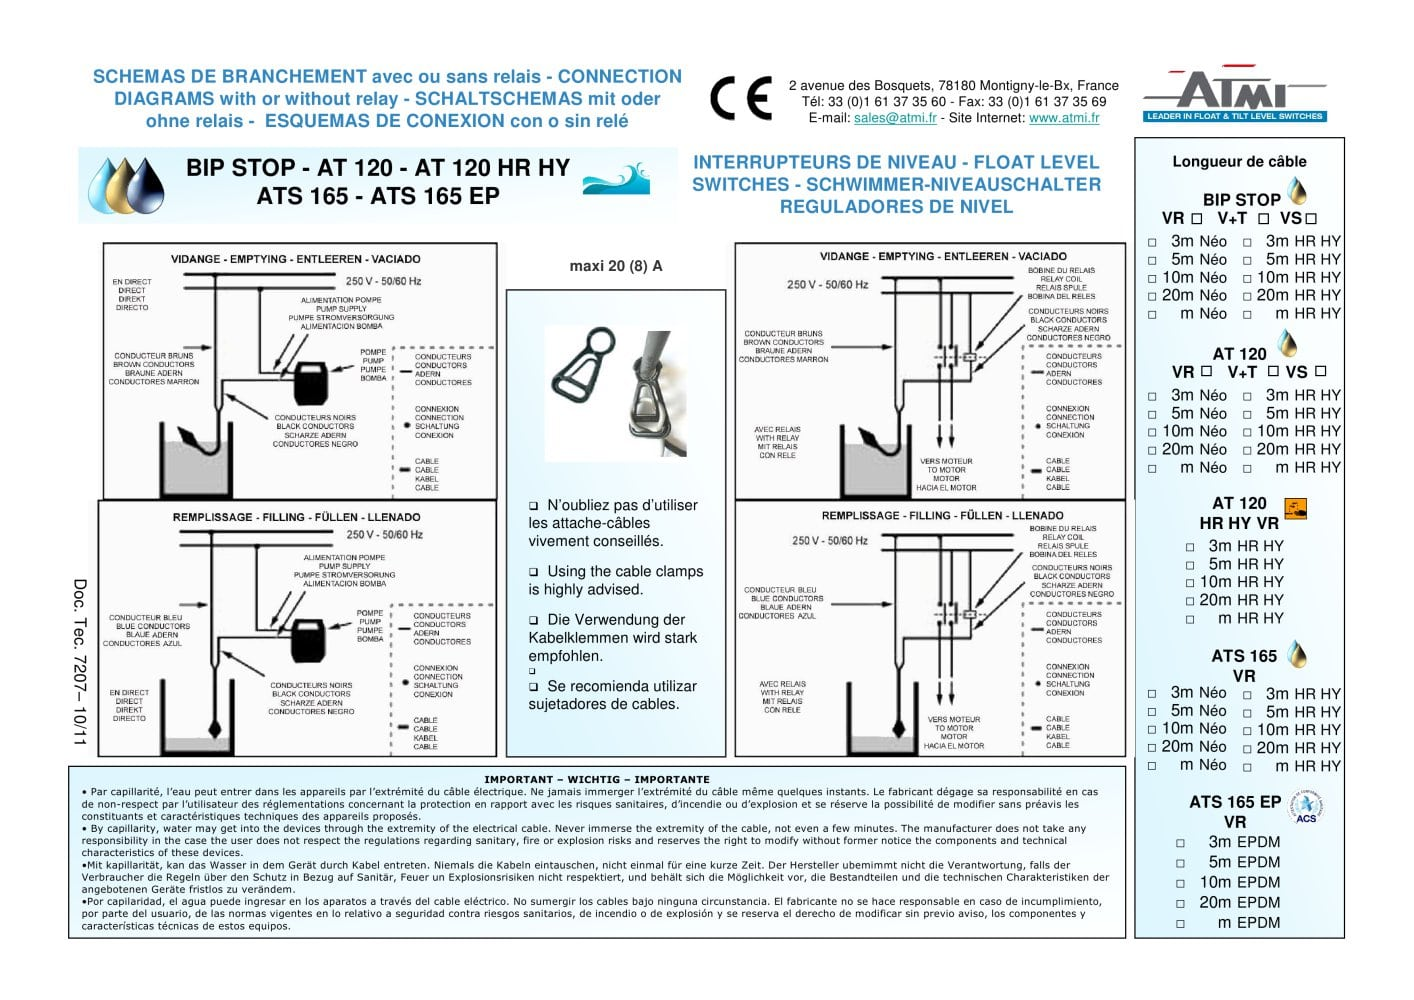 Ats Diagram Pdf Wiring Schematic 2019 3 Wire Pump Pressure Control Diagrams Bip Stop At Atmi Catalogue Rh Directindustry Com Panel